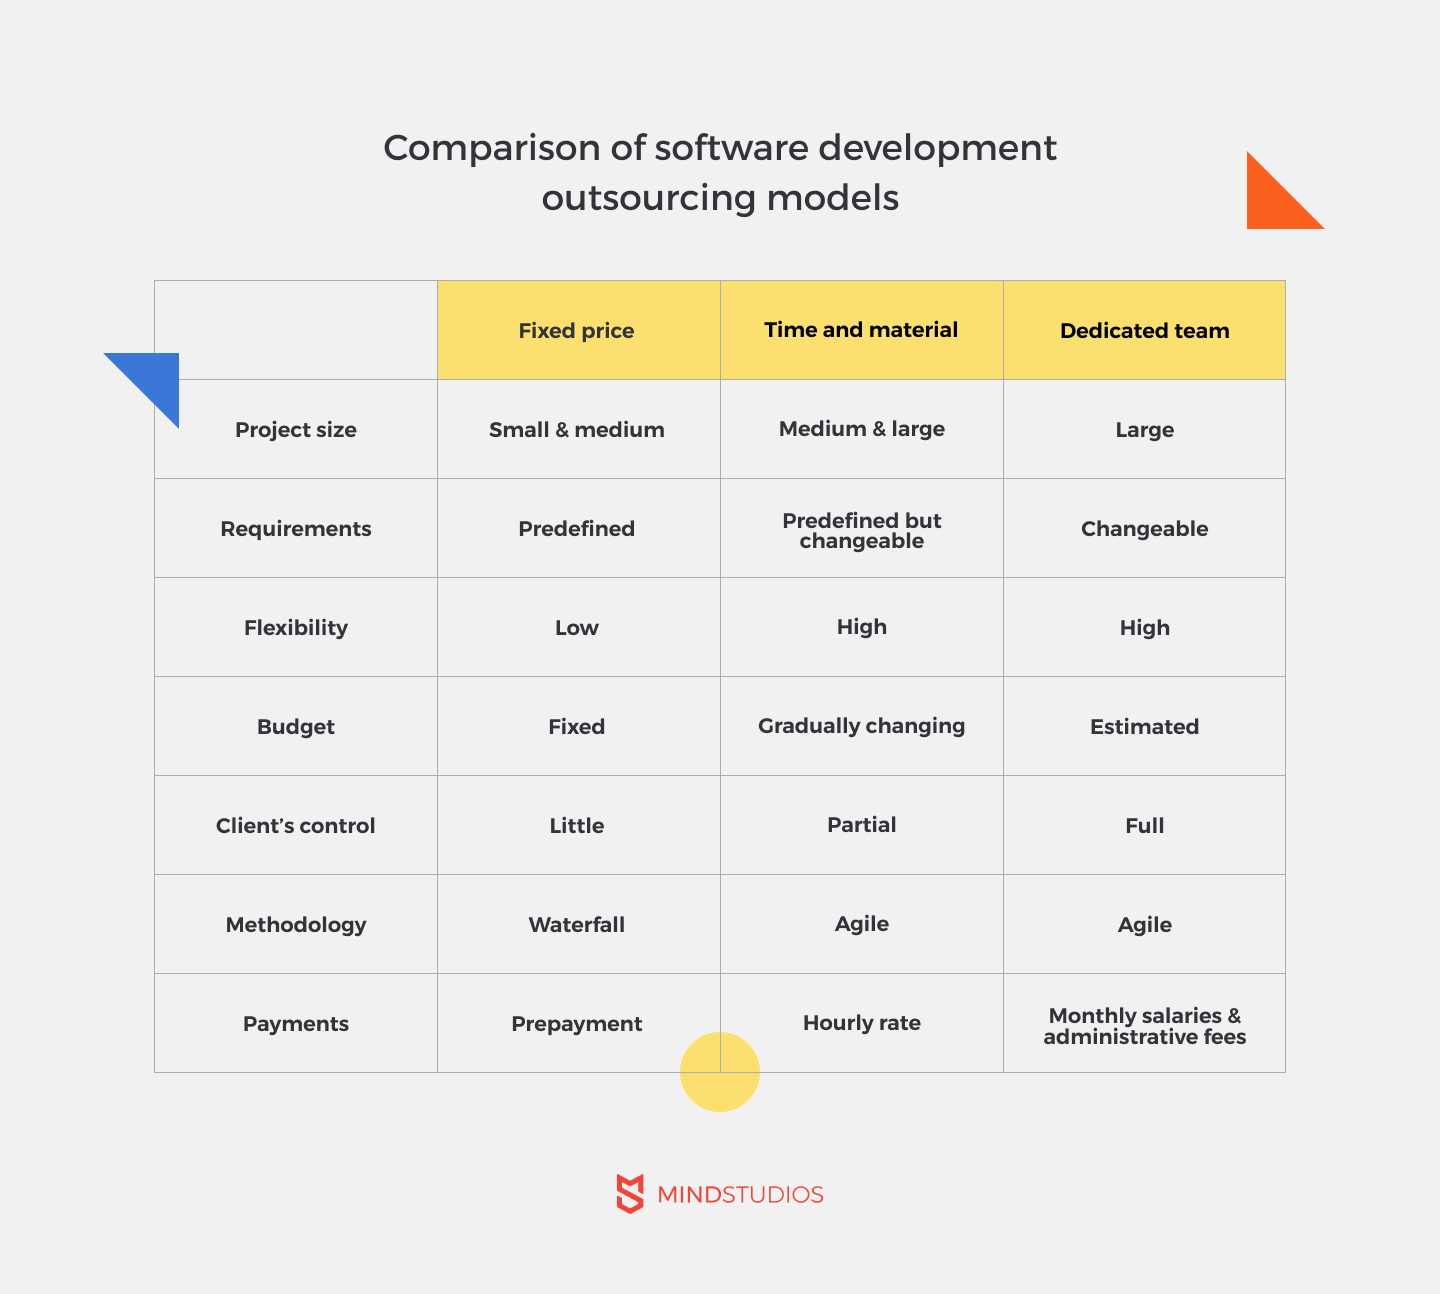 Comparison of software development outsourcing models